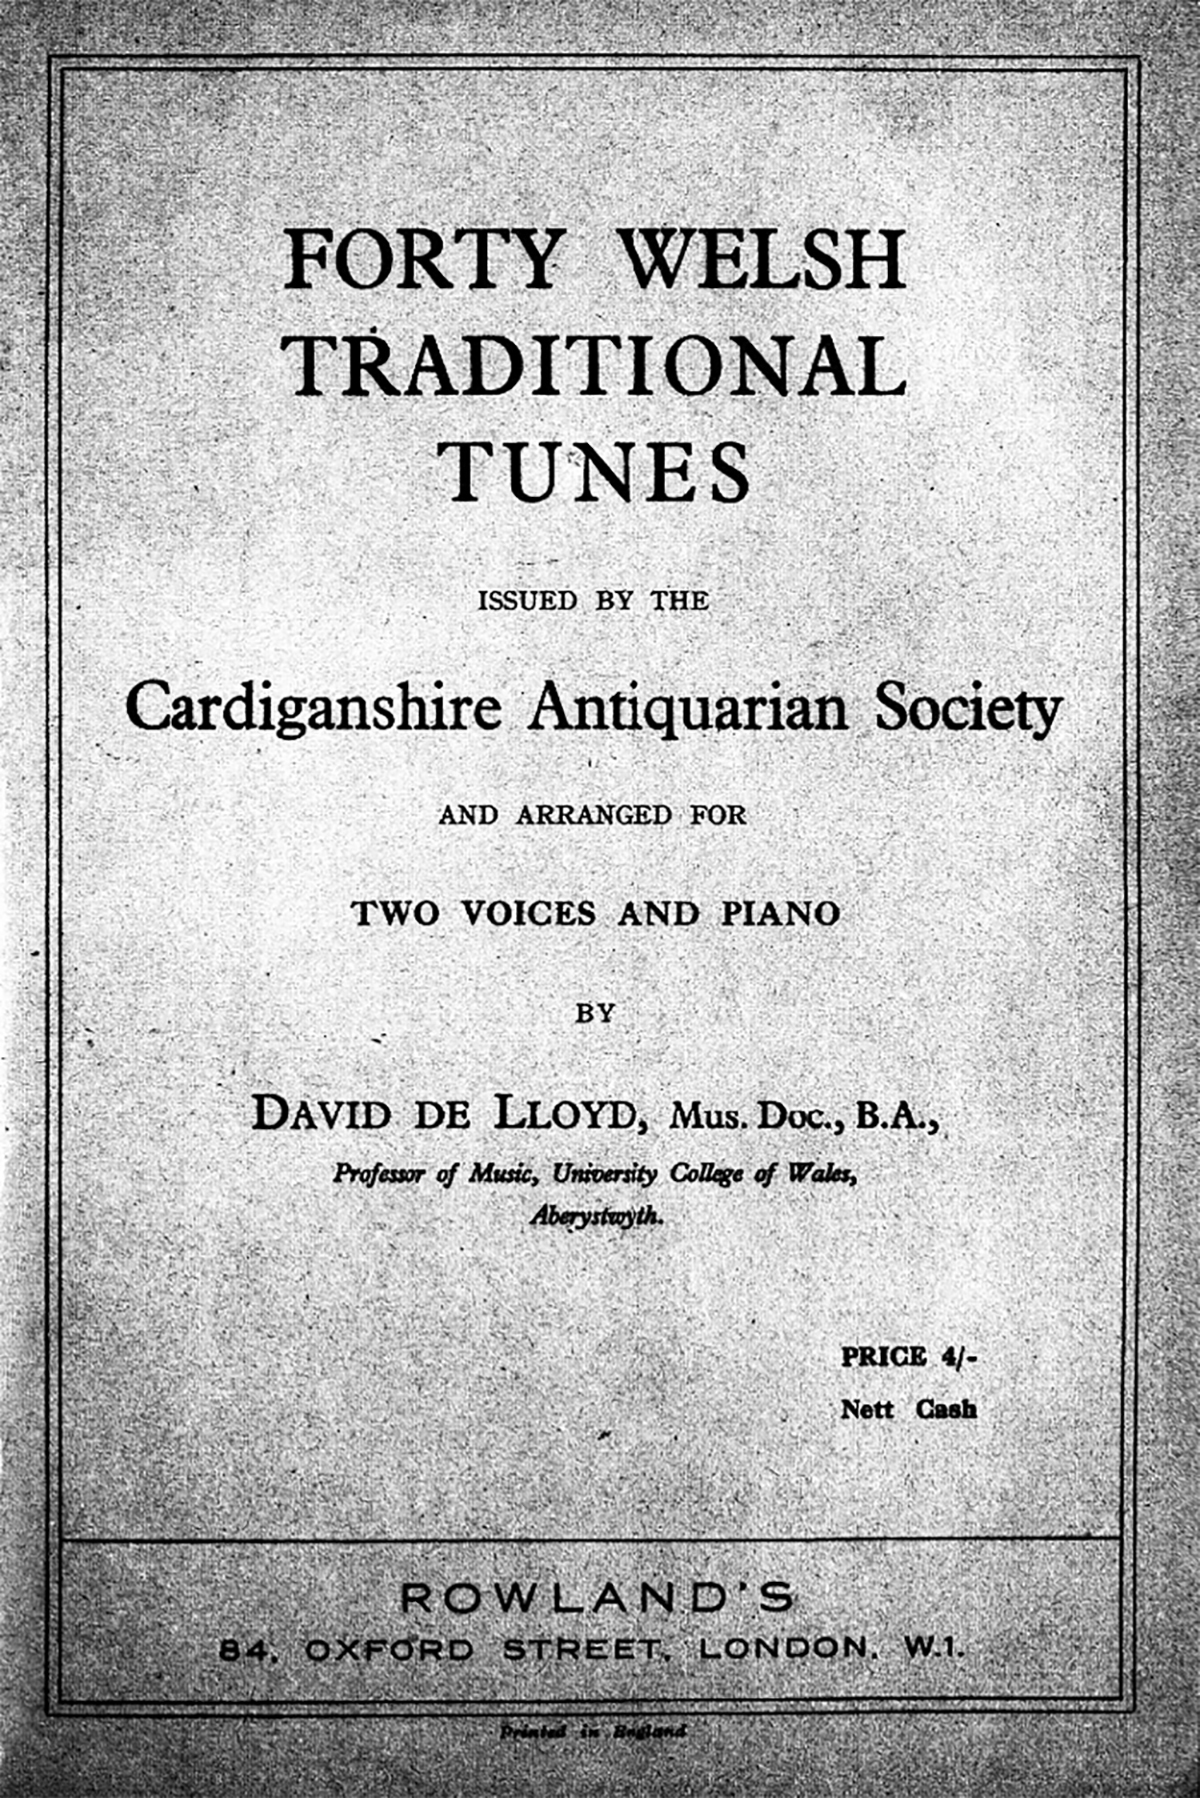 Forty Welsh Traditional Tunes Cardiganshire Antiquarian Society 6